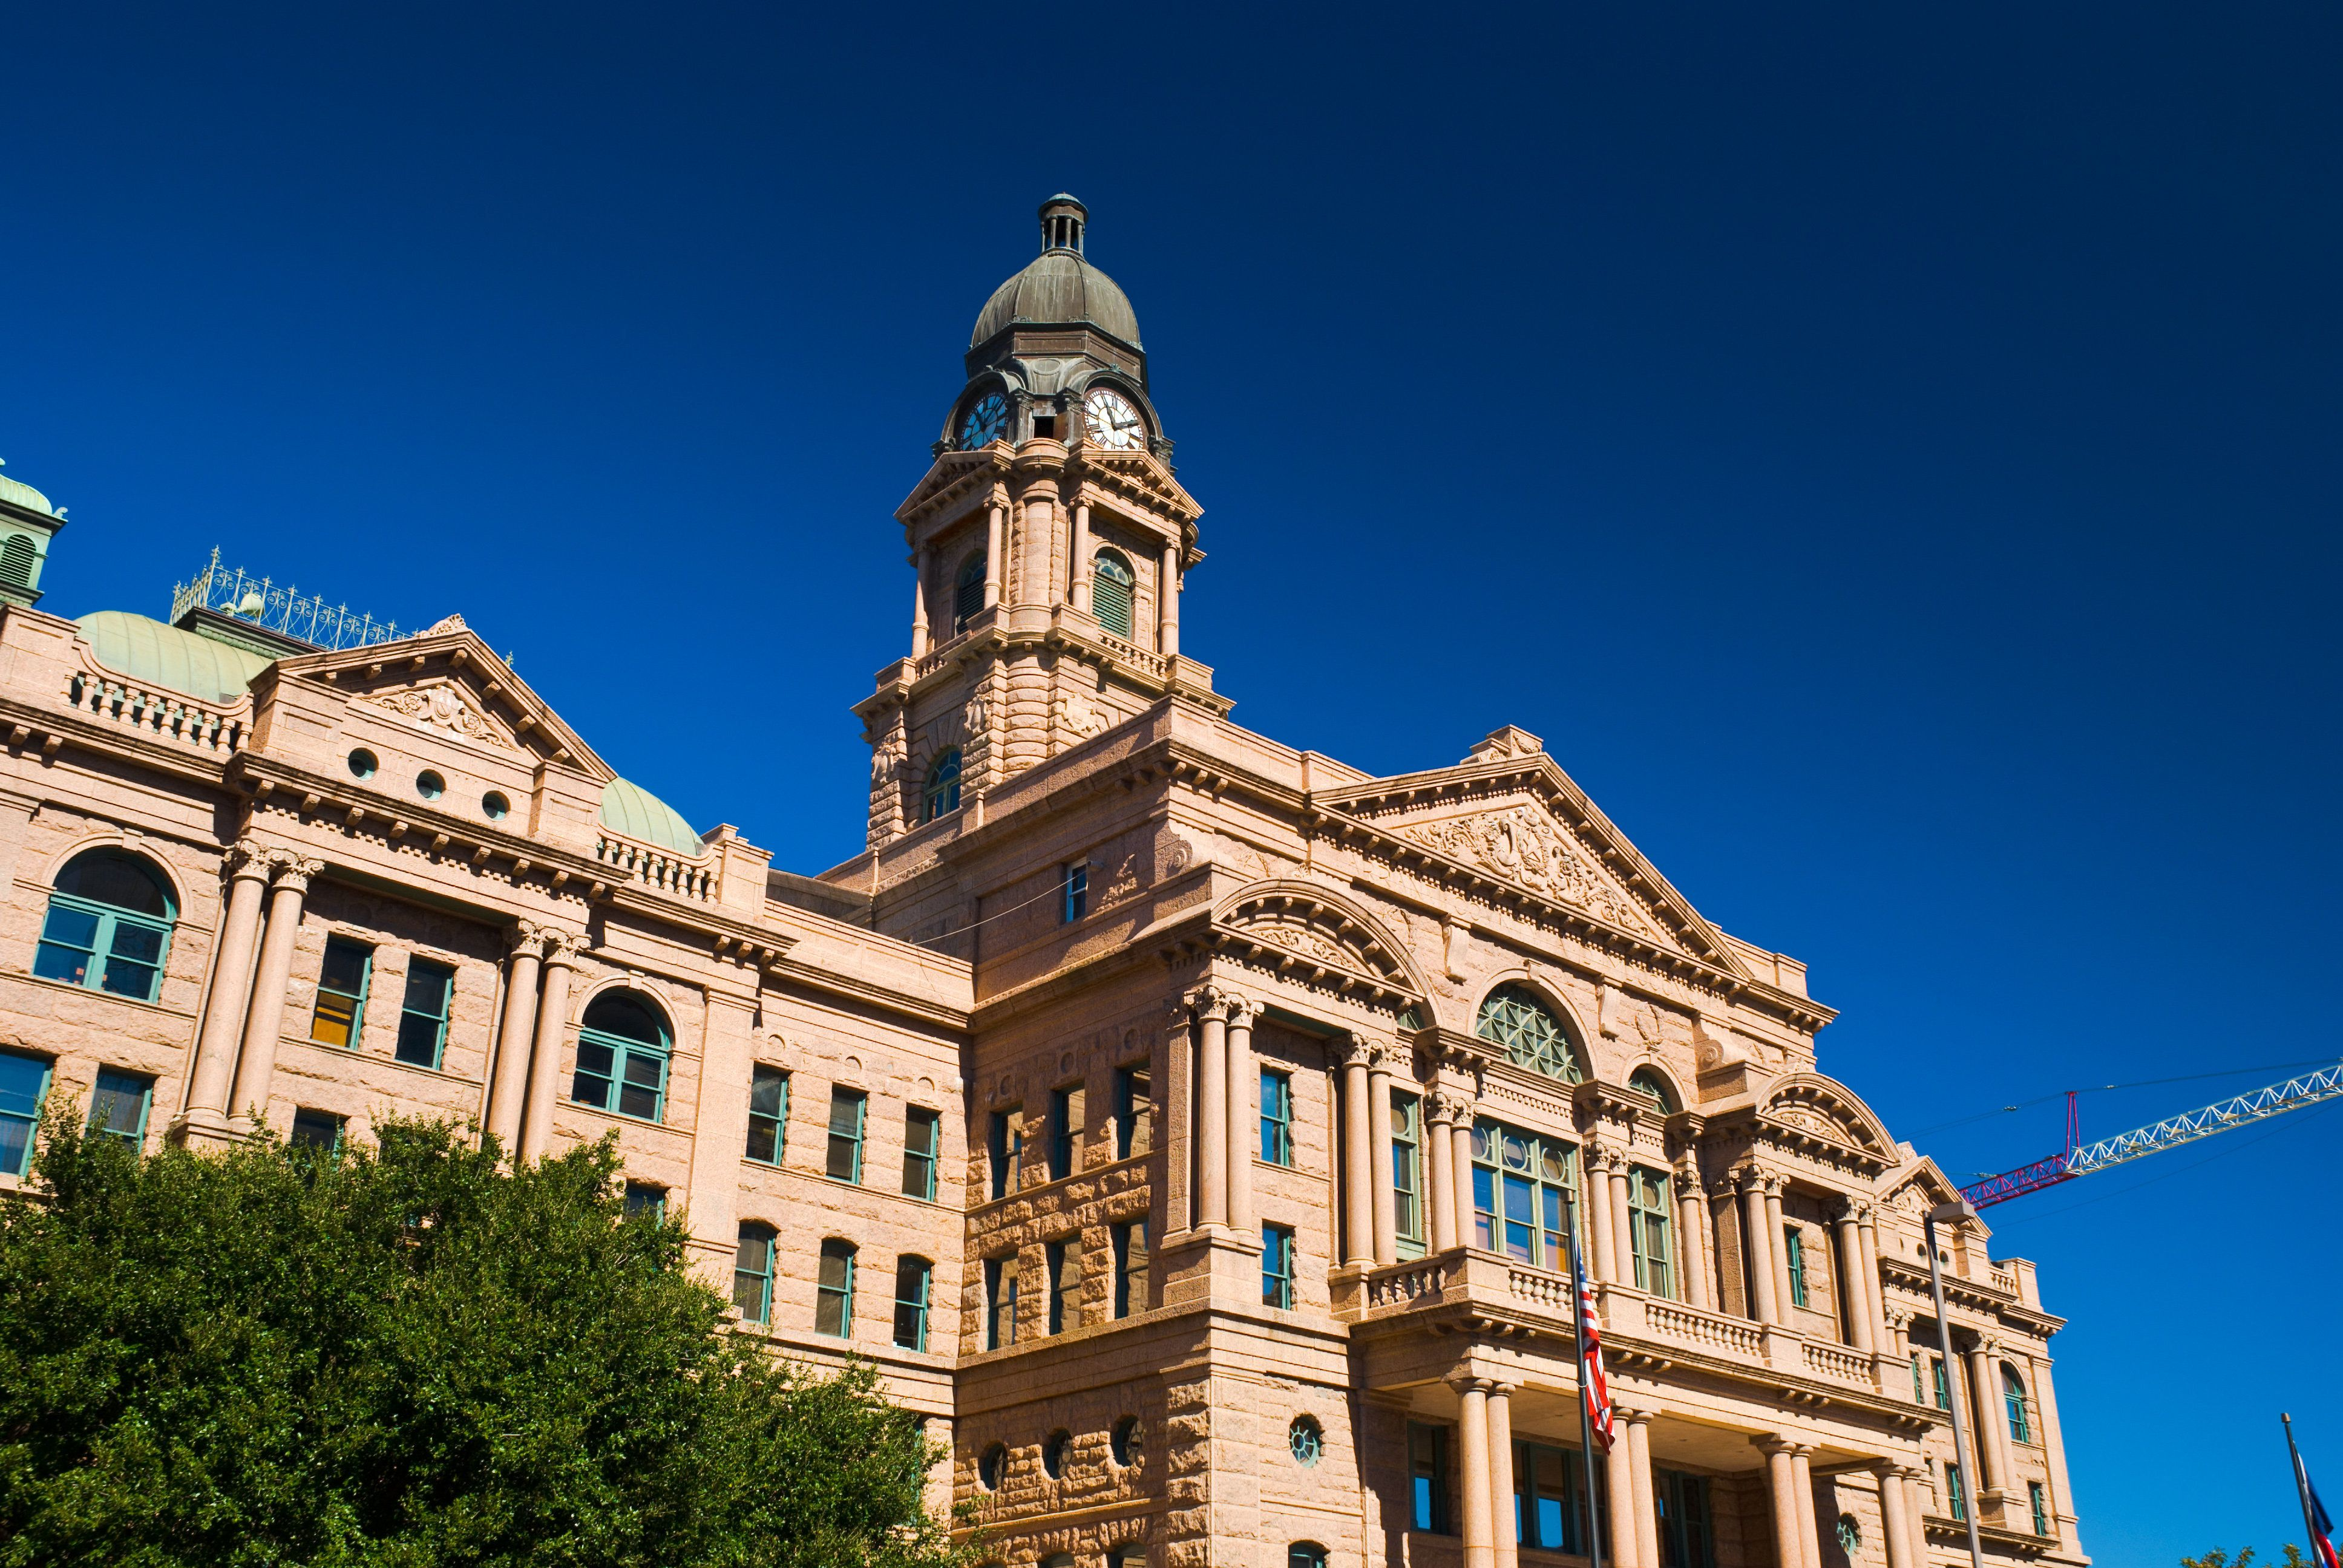 Wide angle view of Tarrant County Courthouse in Fort Worth, Texas